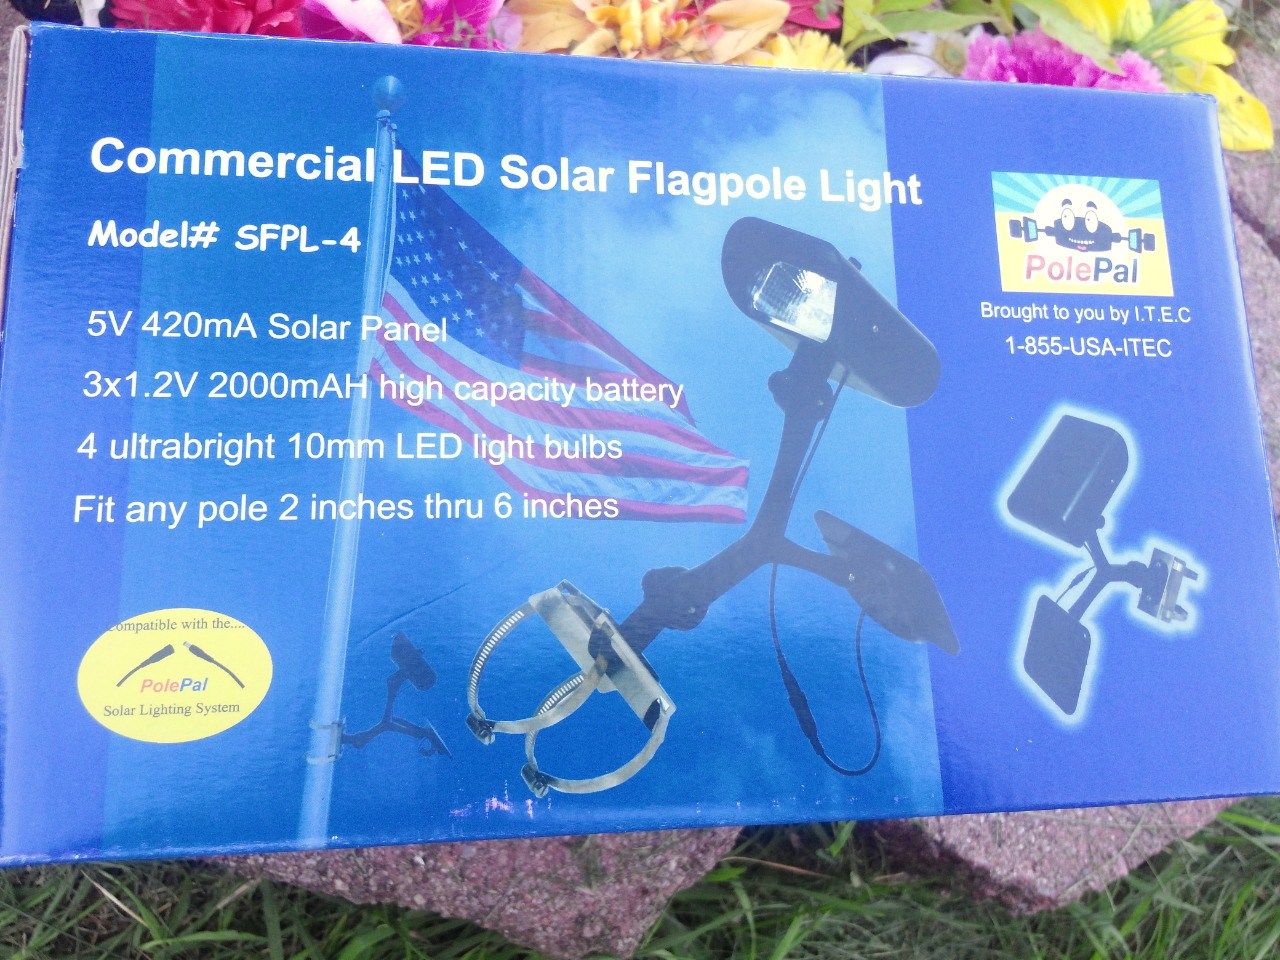 Entry Level Commercial Solar Flagpole Light- Product Box - PolePalUSA